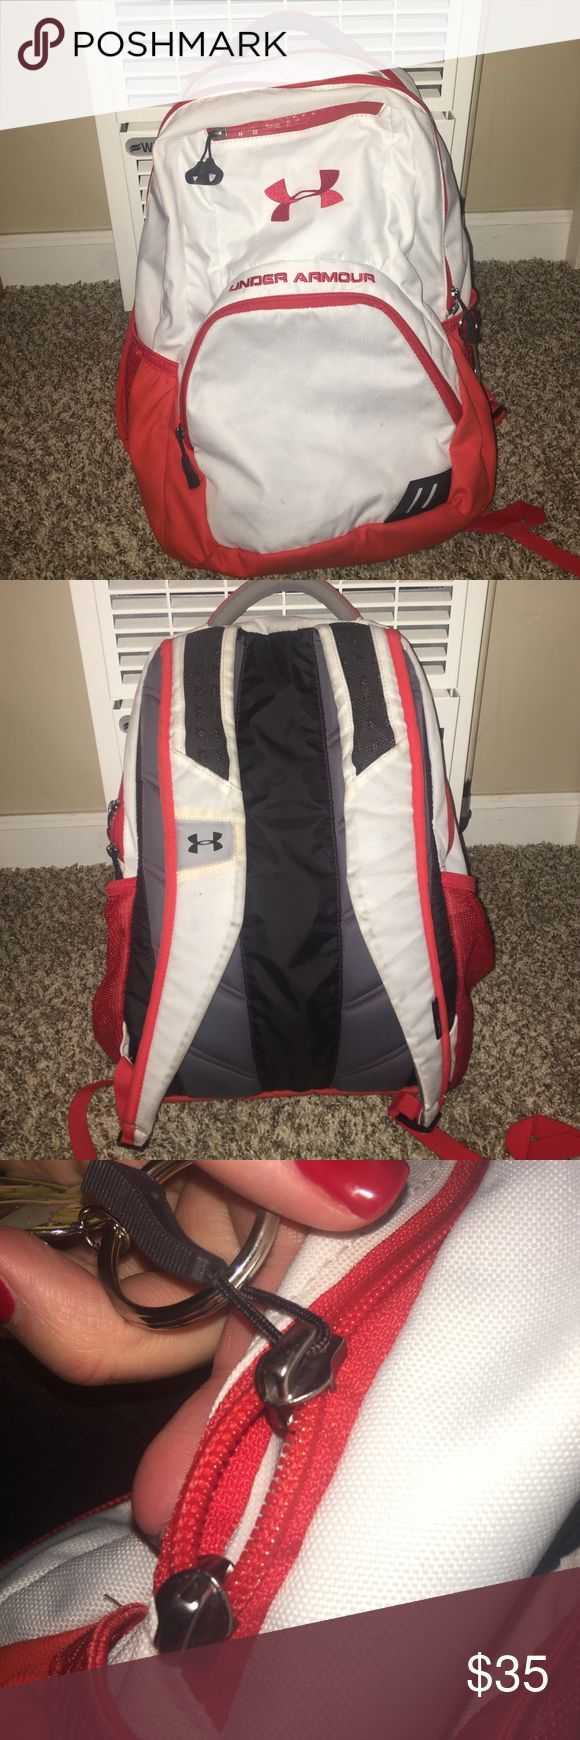 Under armor backpack! Under armor storm back pack with 3 large pouches, 1 small pouch, a laptop sleeve, and 2 water bottle holders on sides! A few minor flaws (images 3 and 4) and a little bit dirty in a couple spots but nothing major! Perfect backpack for school or the gym! Under Armour Bags Backpacks